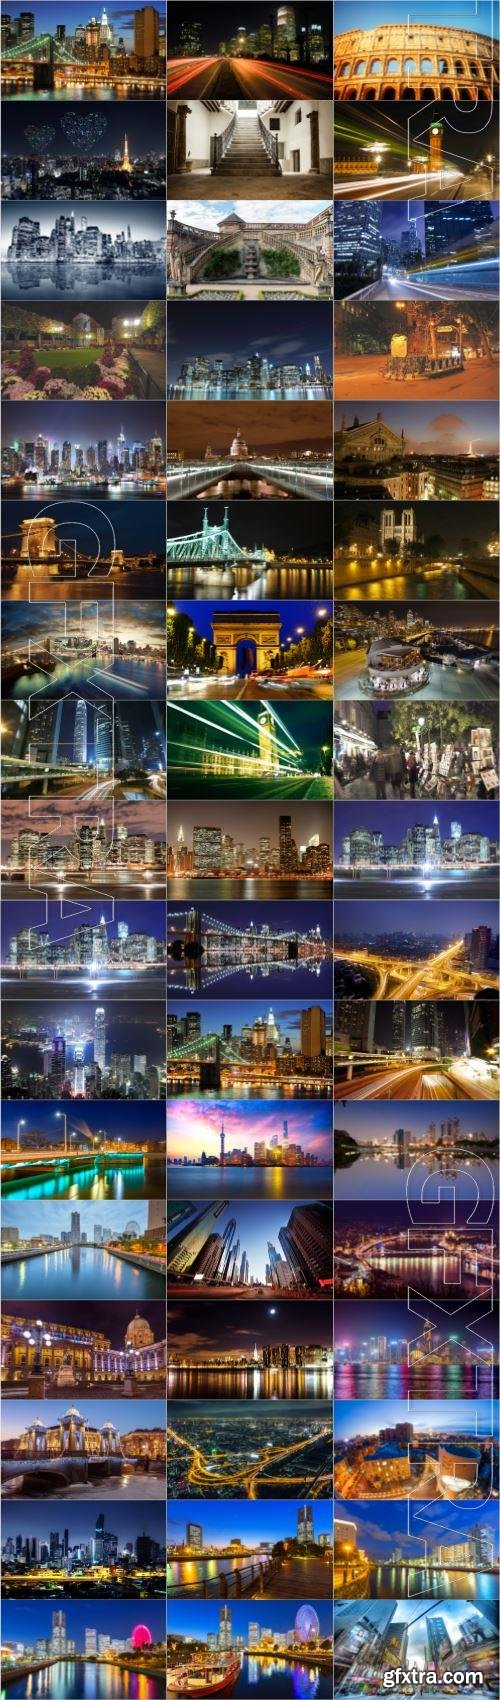 Cities night large selection of stock photos